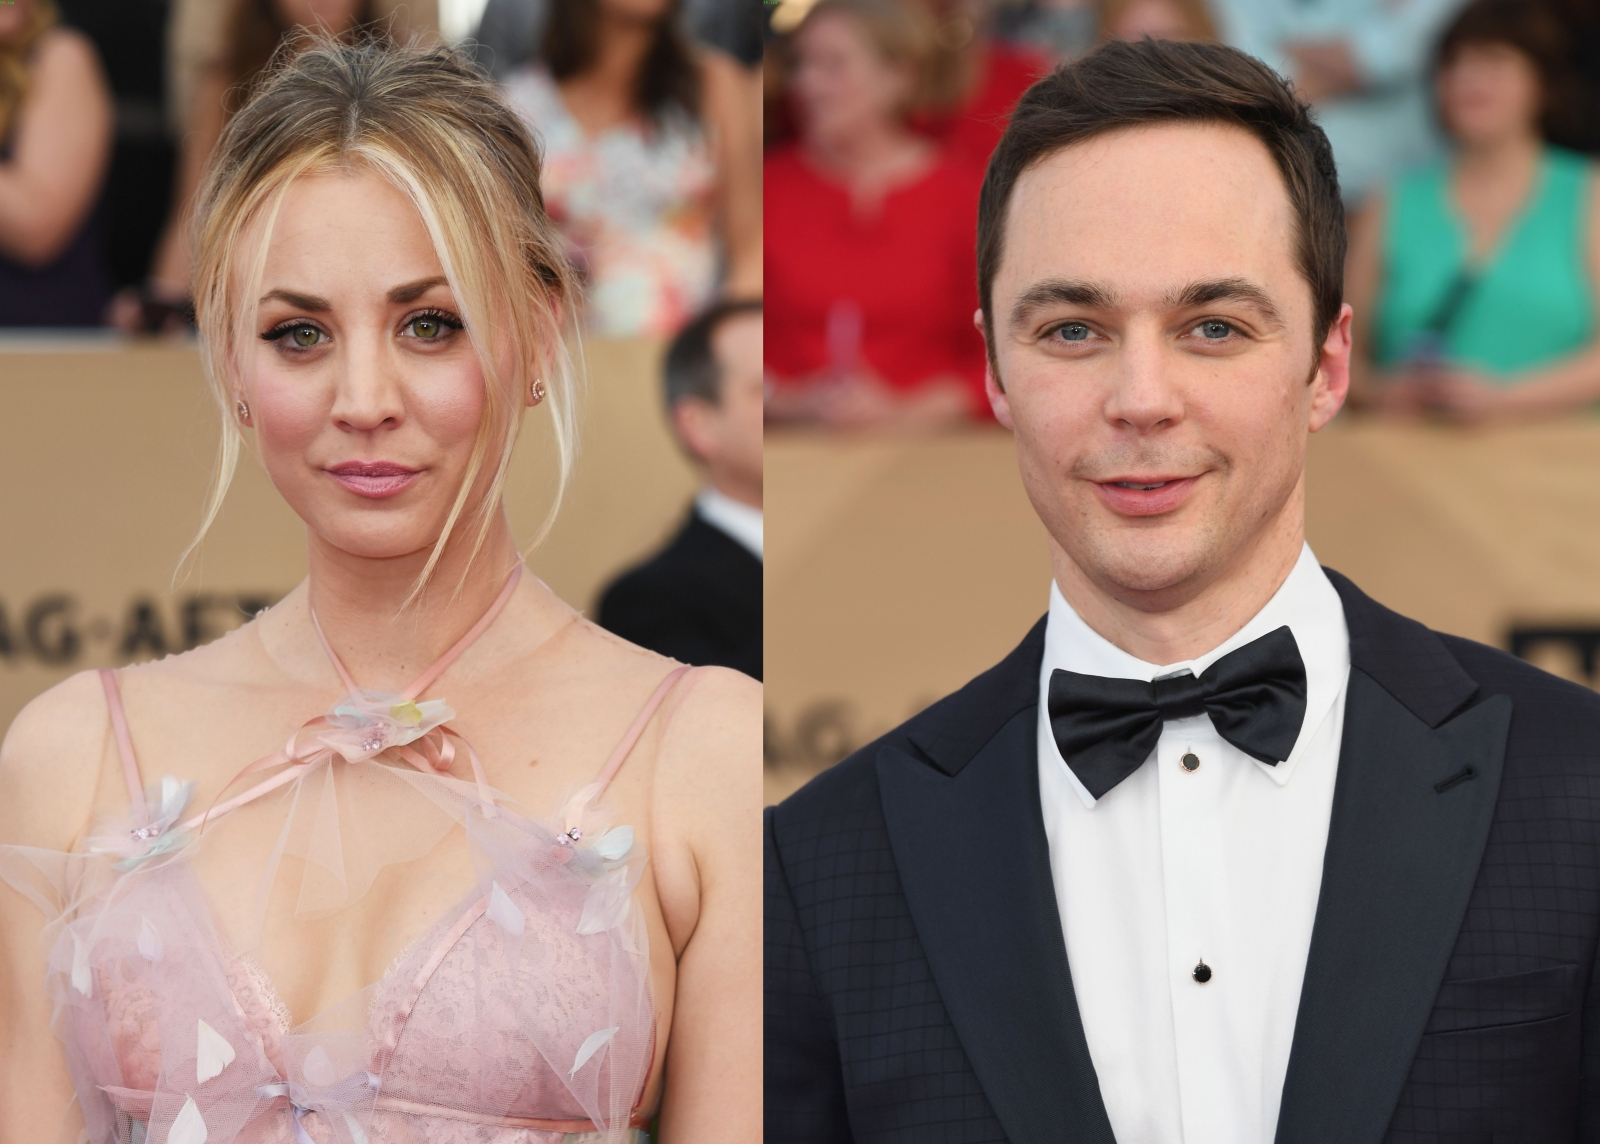 Kaley Cuoco and Jim Parsons